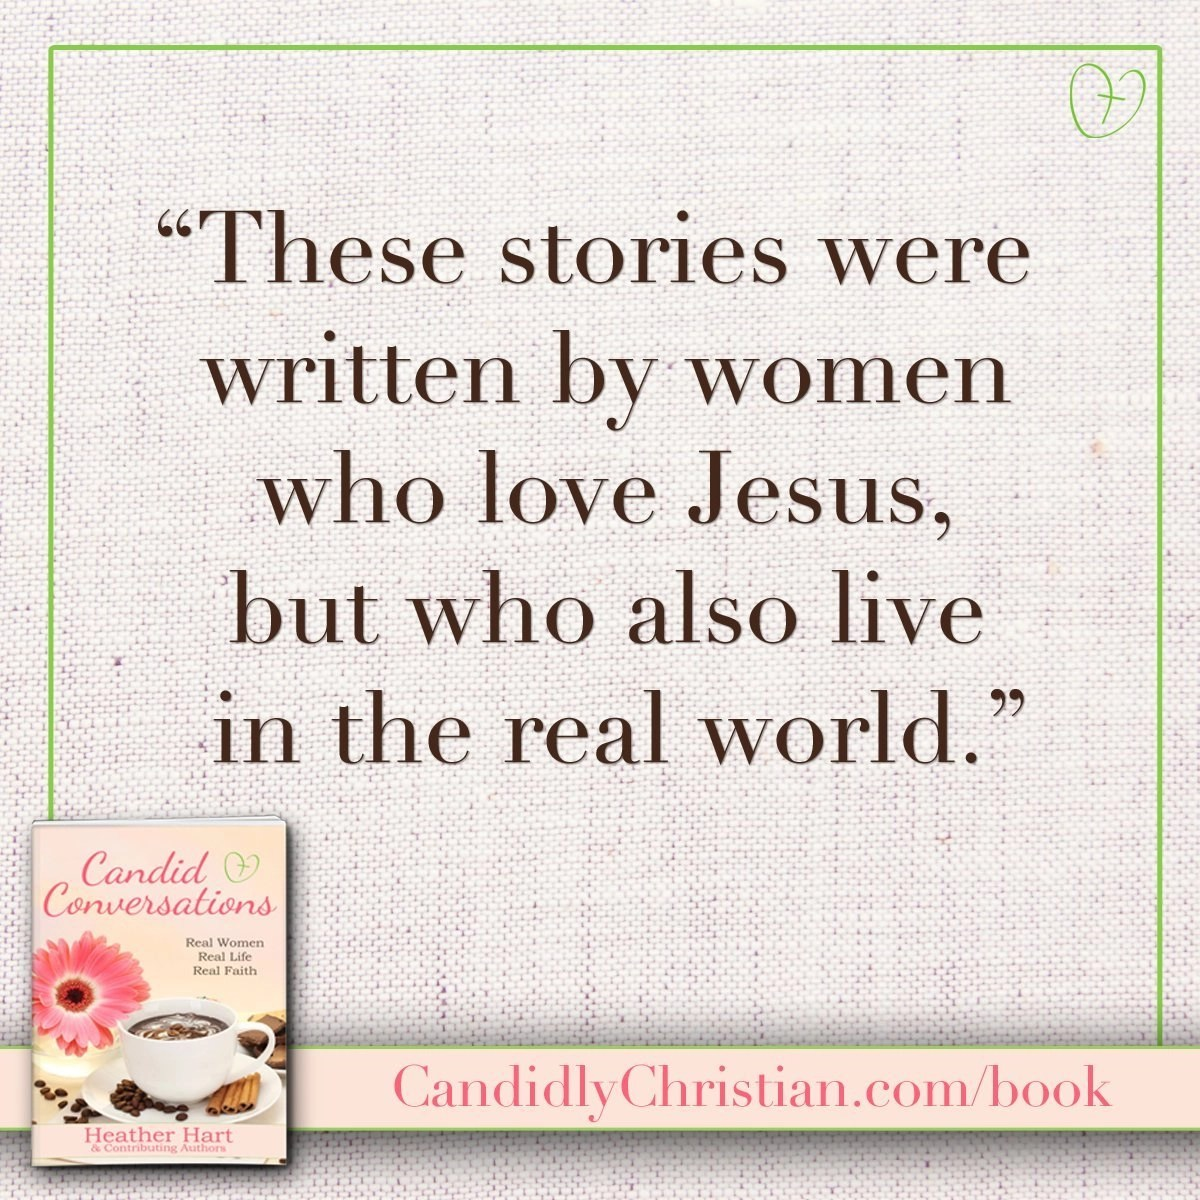 Candid Conversations - real stories, by real women.